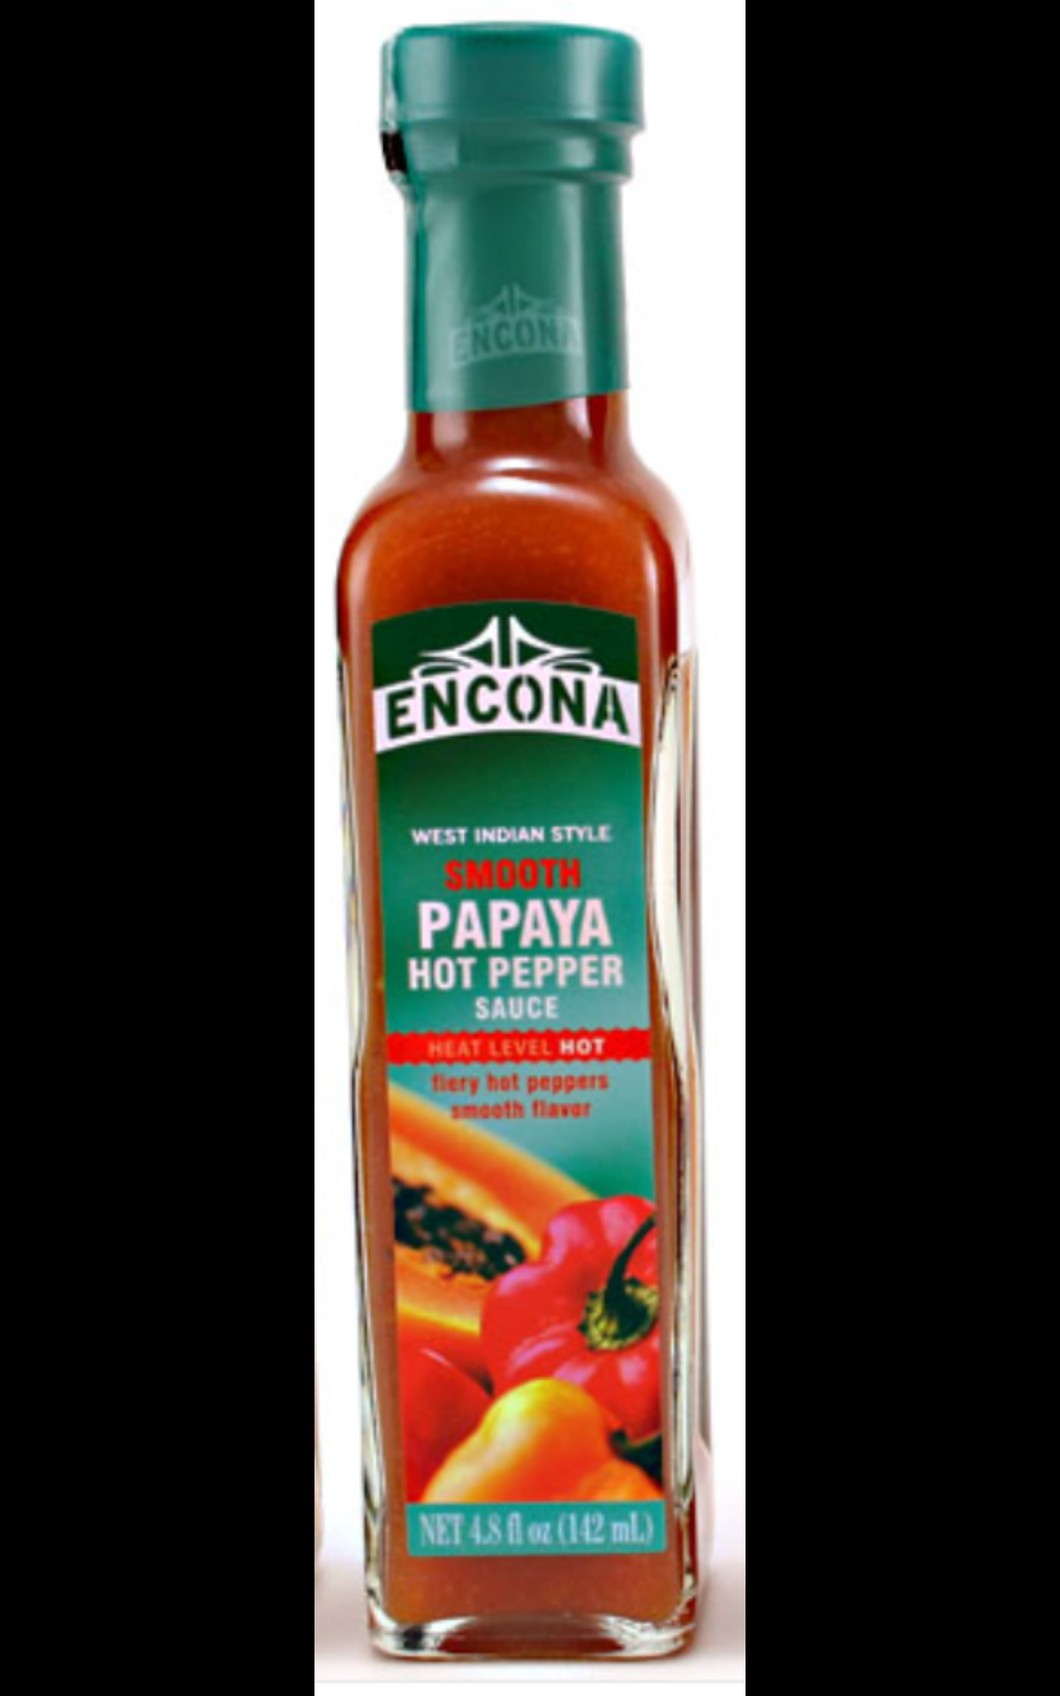 Encona Smooth Papaya Hot Pepper Sauce - Evansfoods